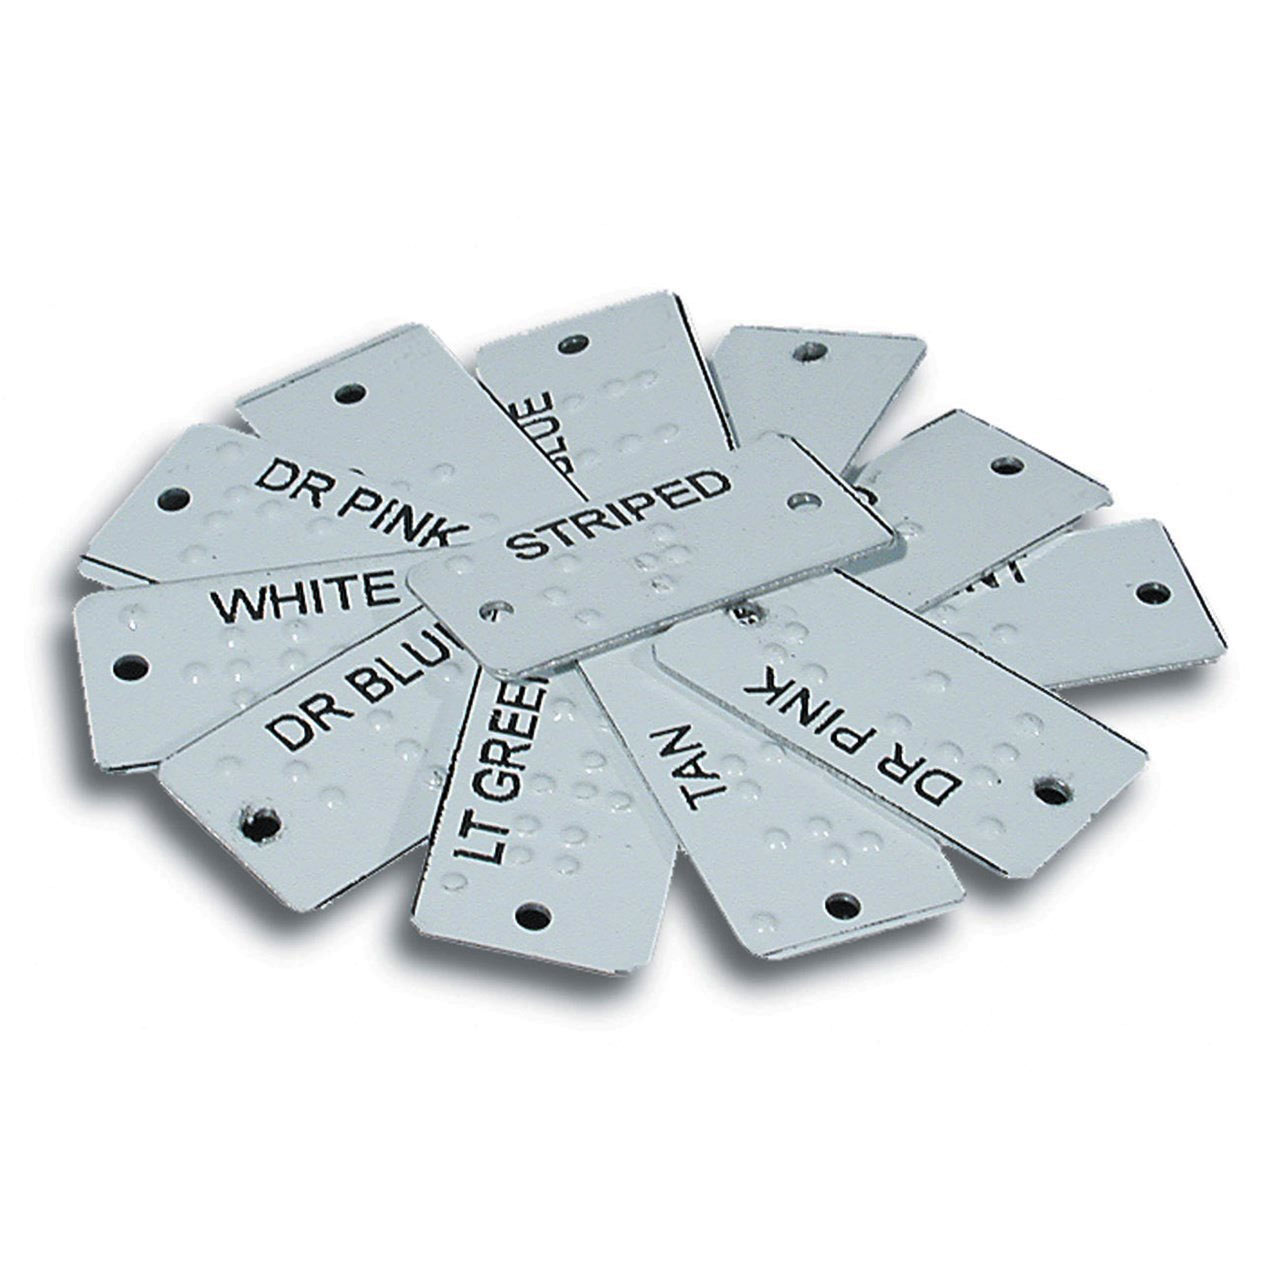 Aluminum Braille Clothing Identifiers Price: $29.75